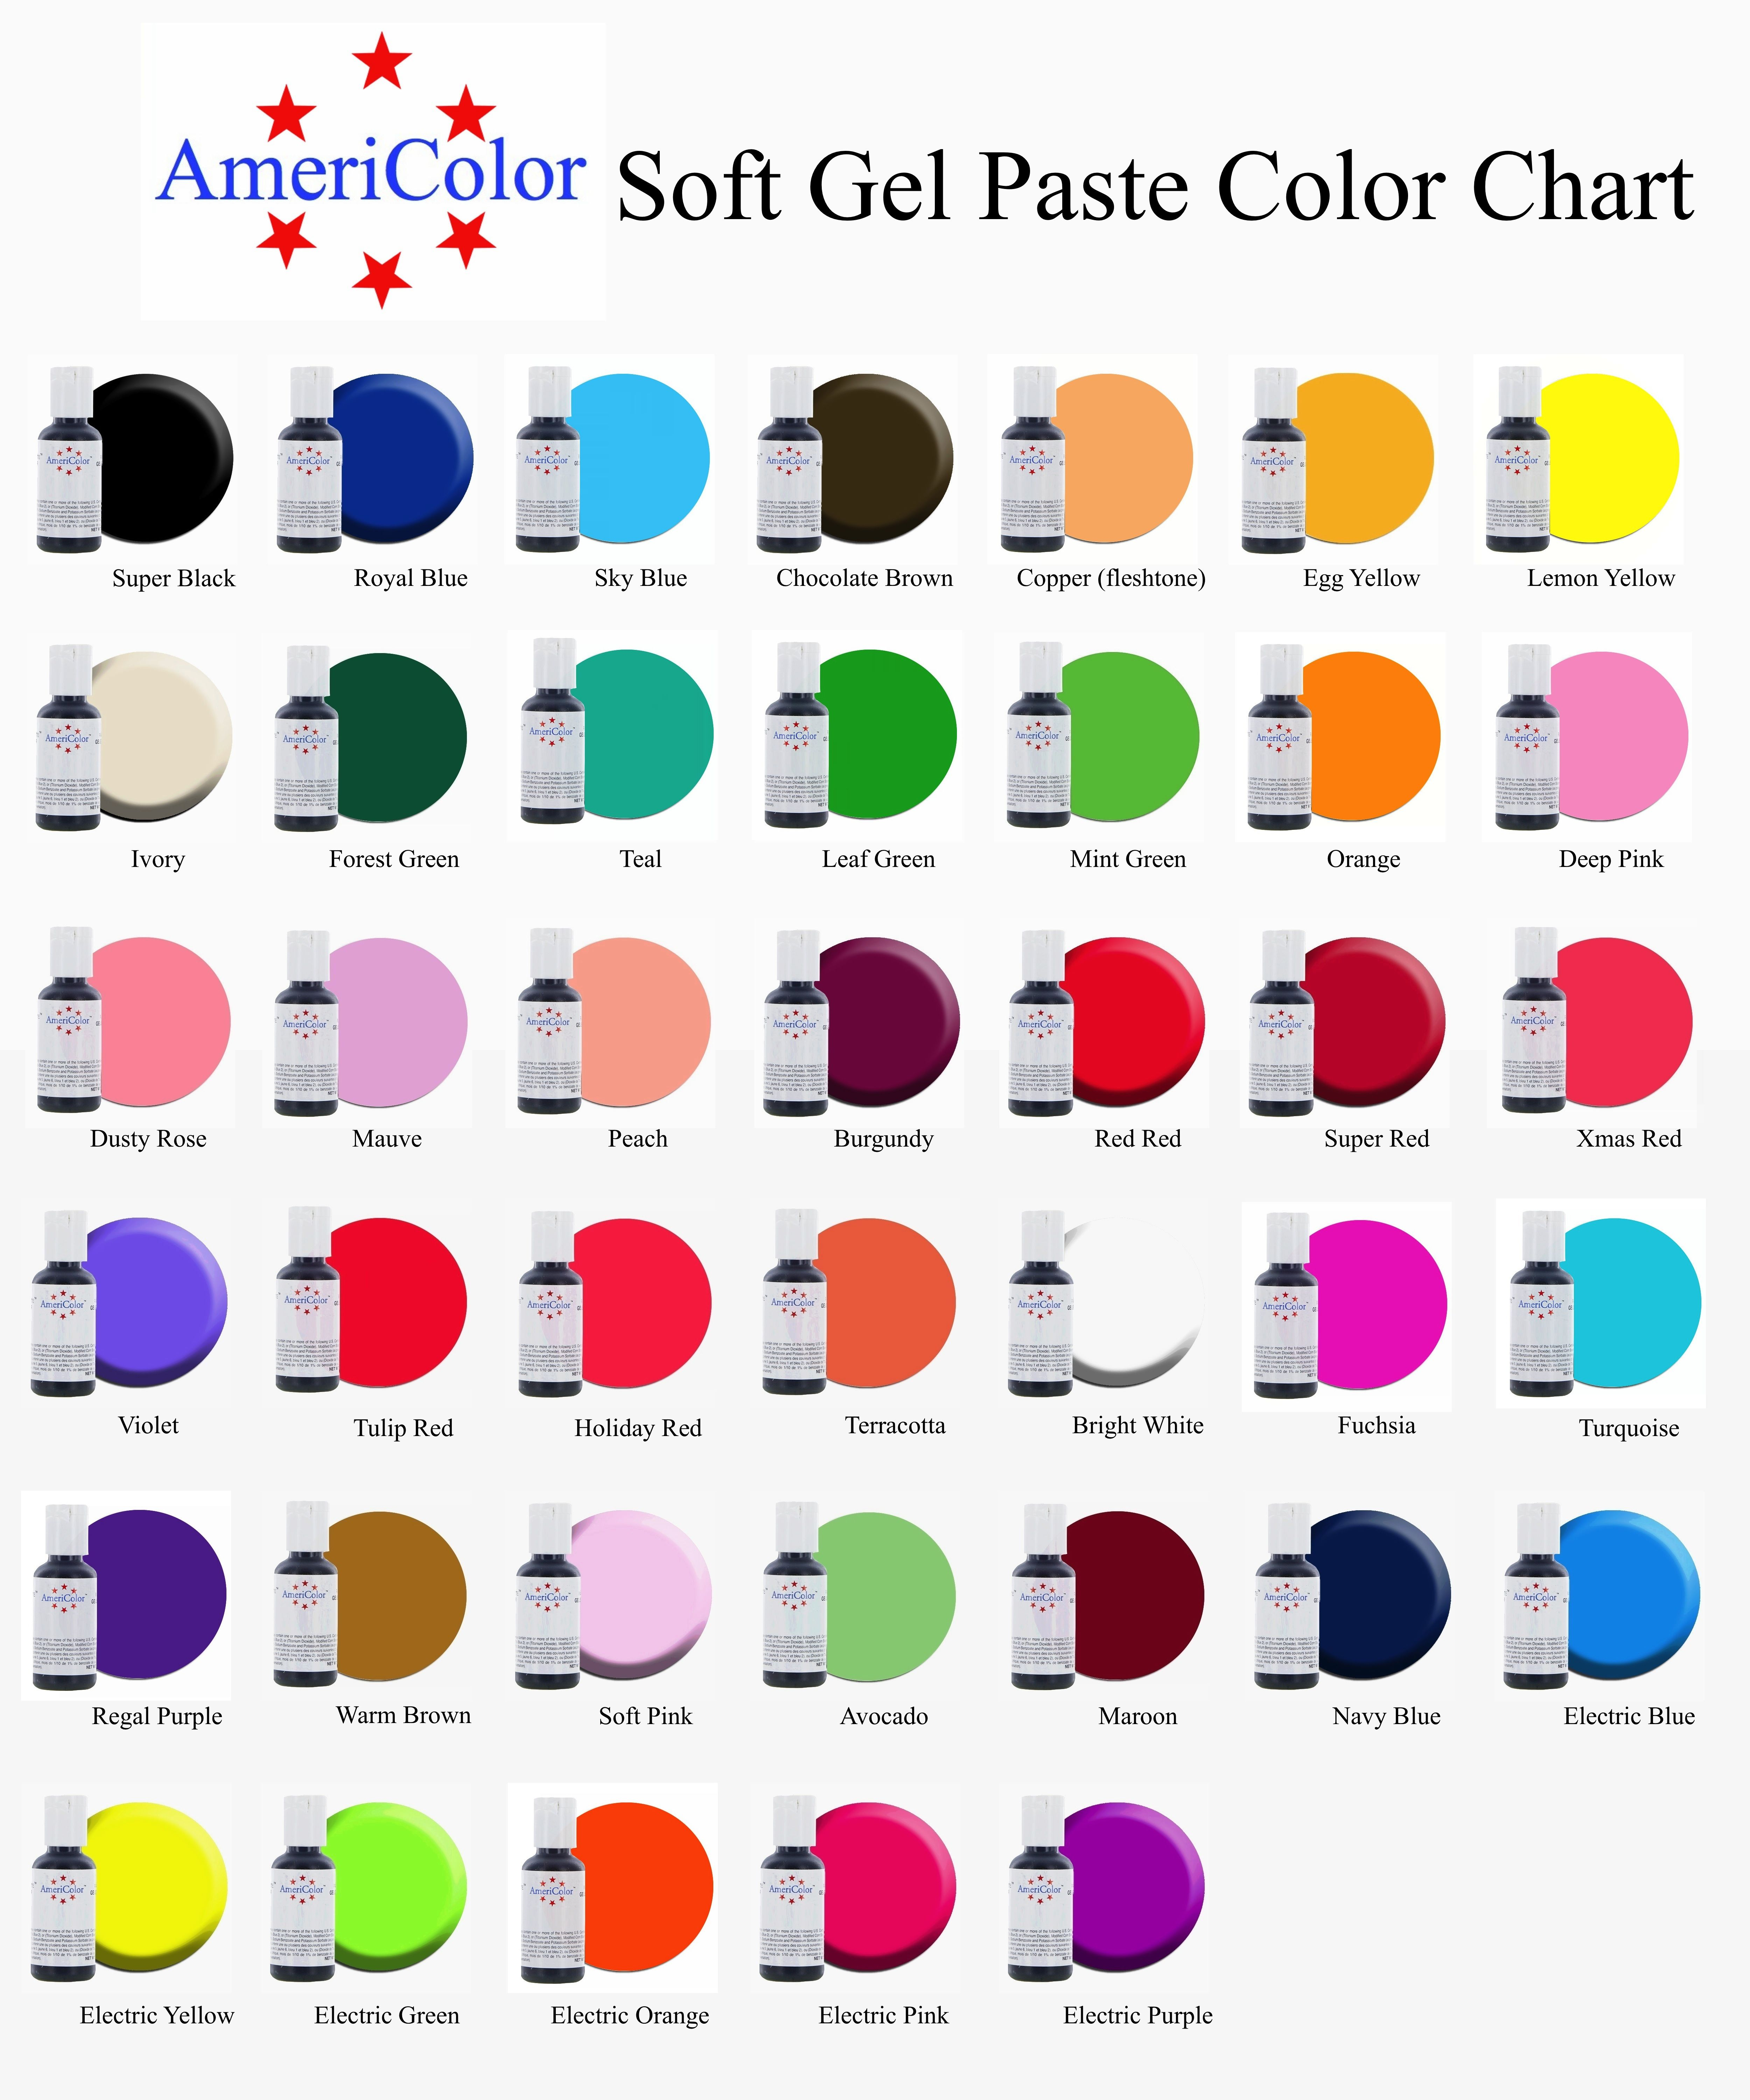 americolor color mixing chart | The color mixing guide from the May ...